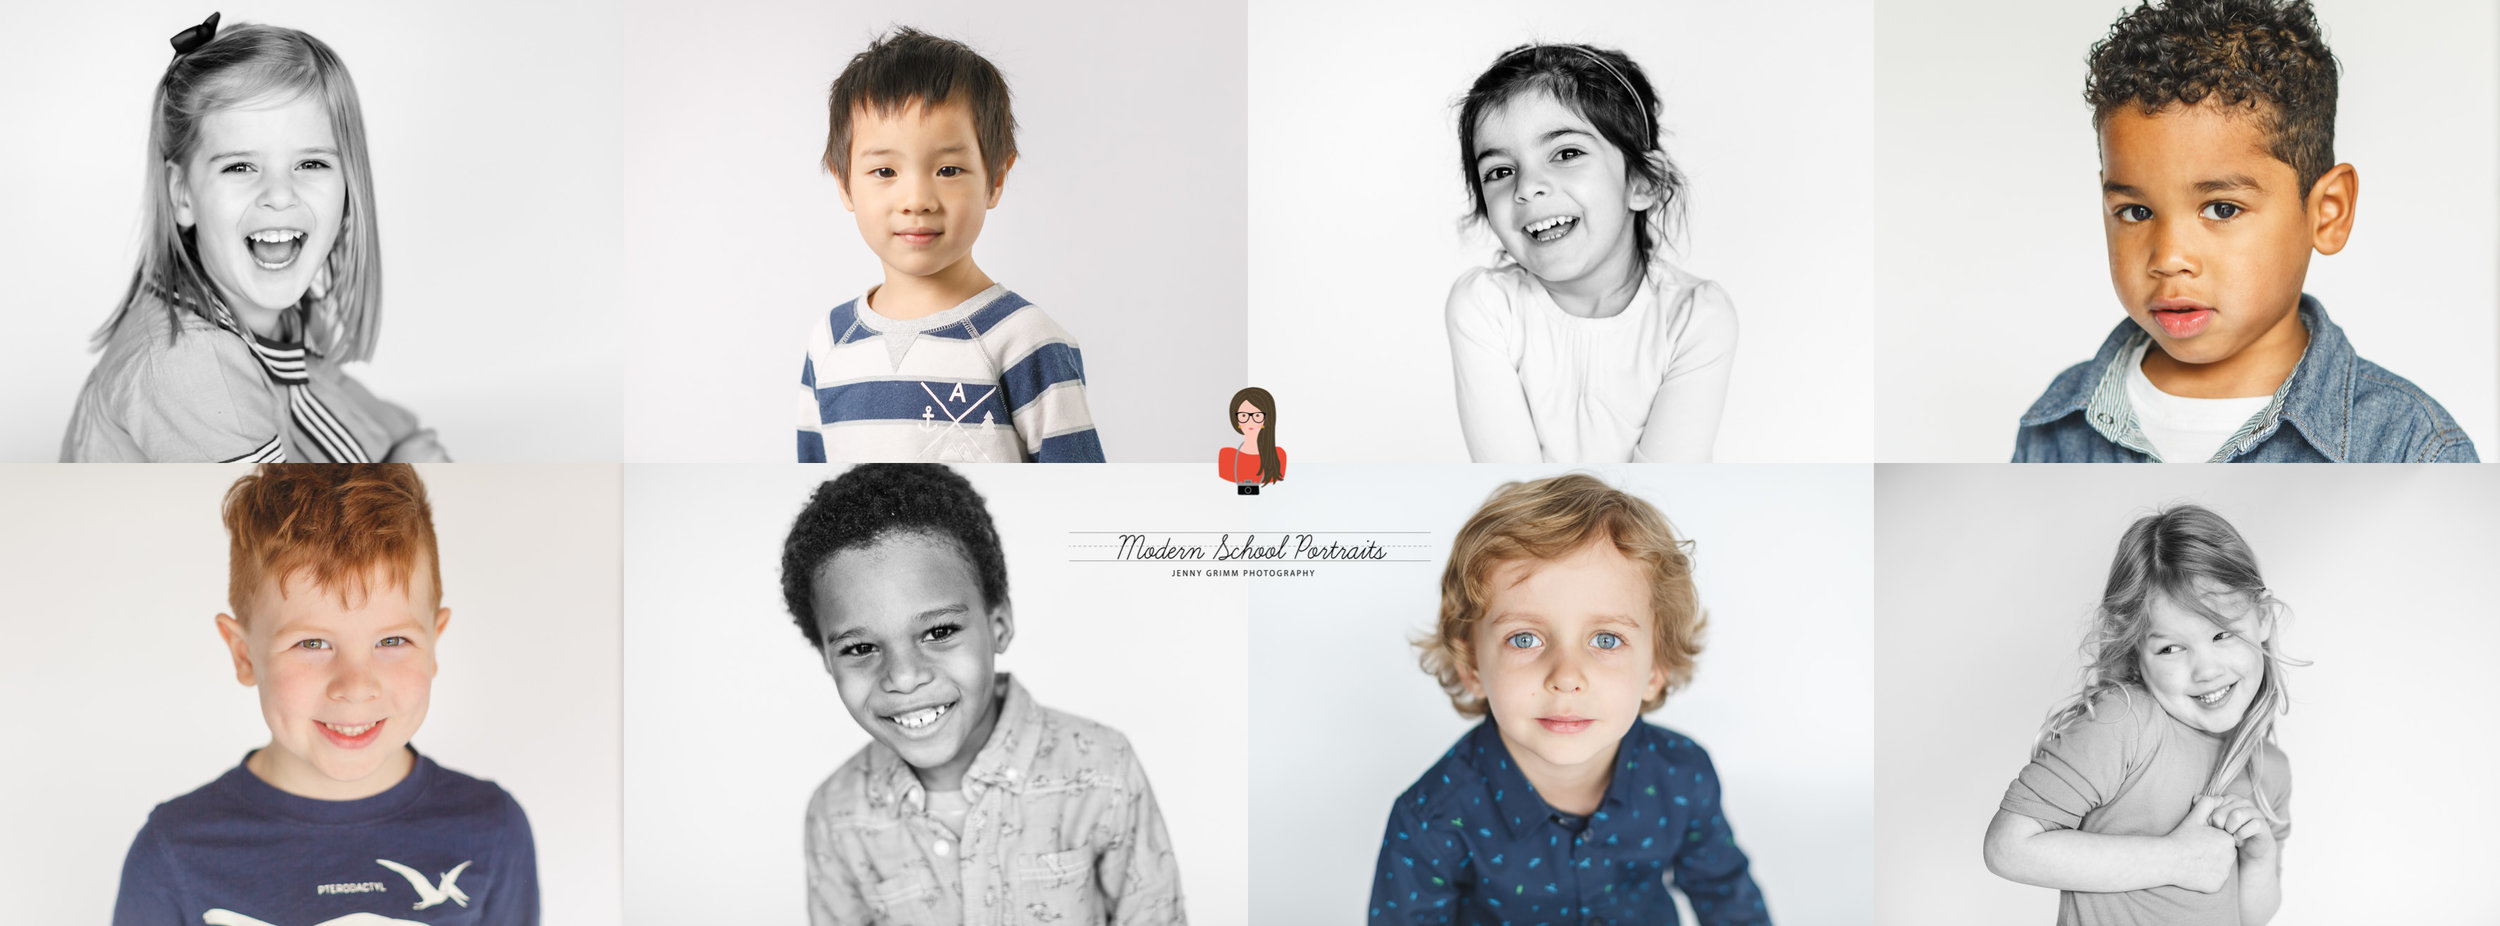 CHICAGO preschool lifestyle portraits modern school photography jenny grimm